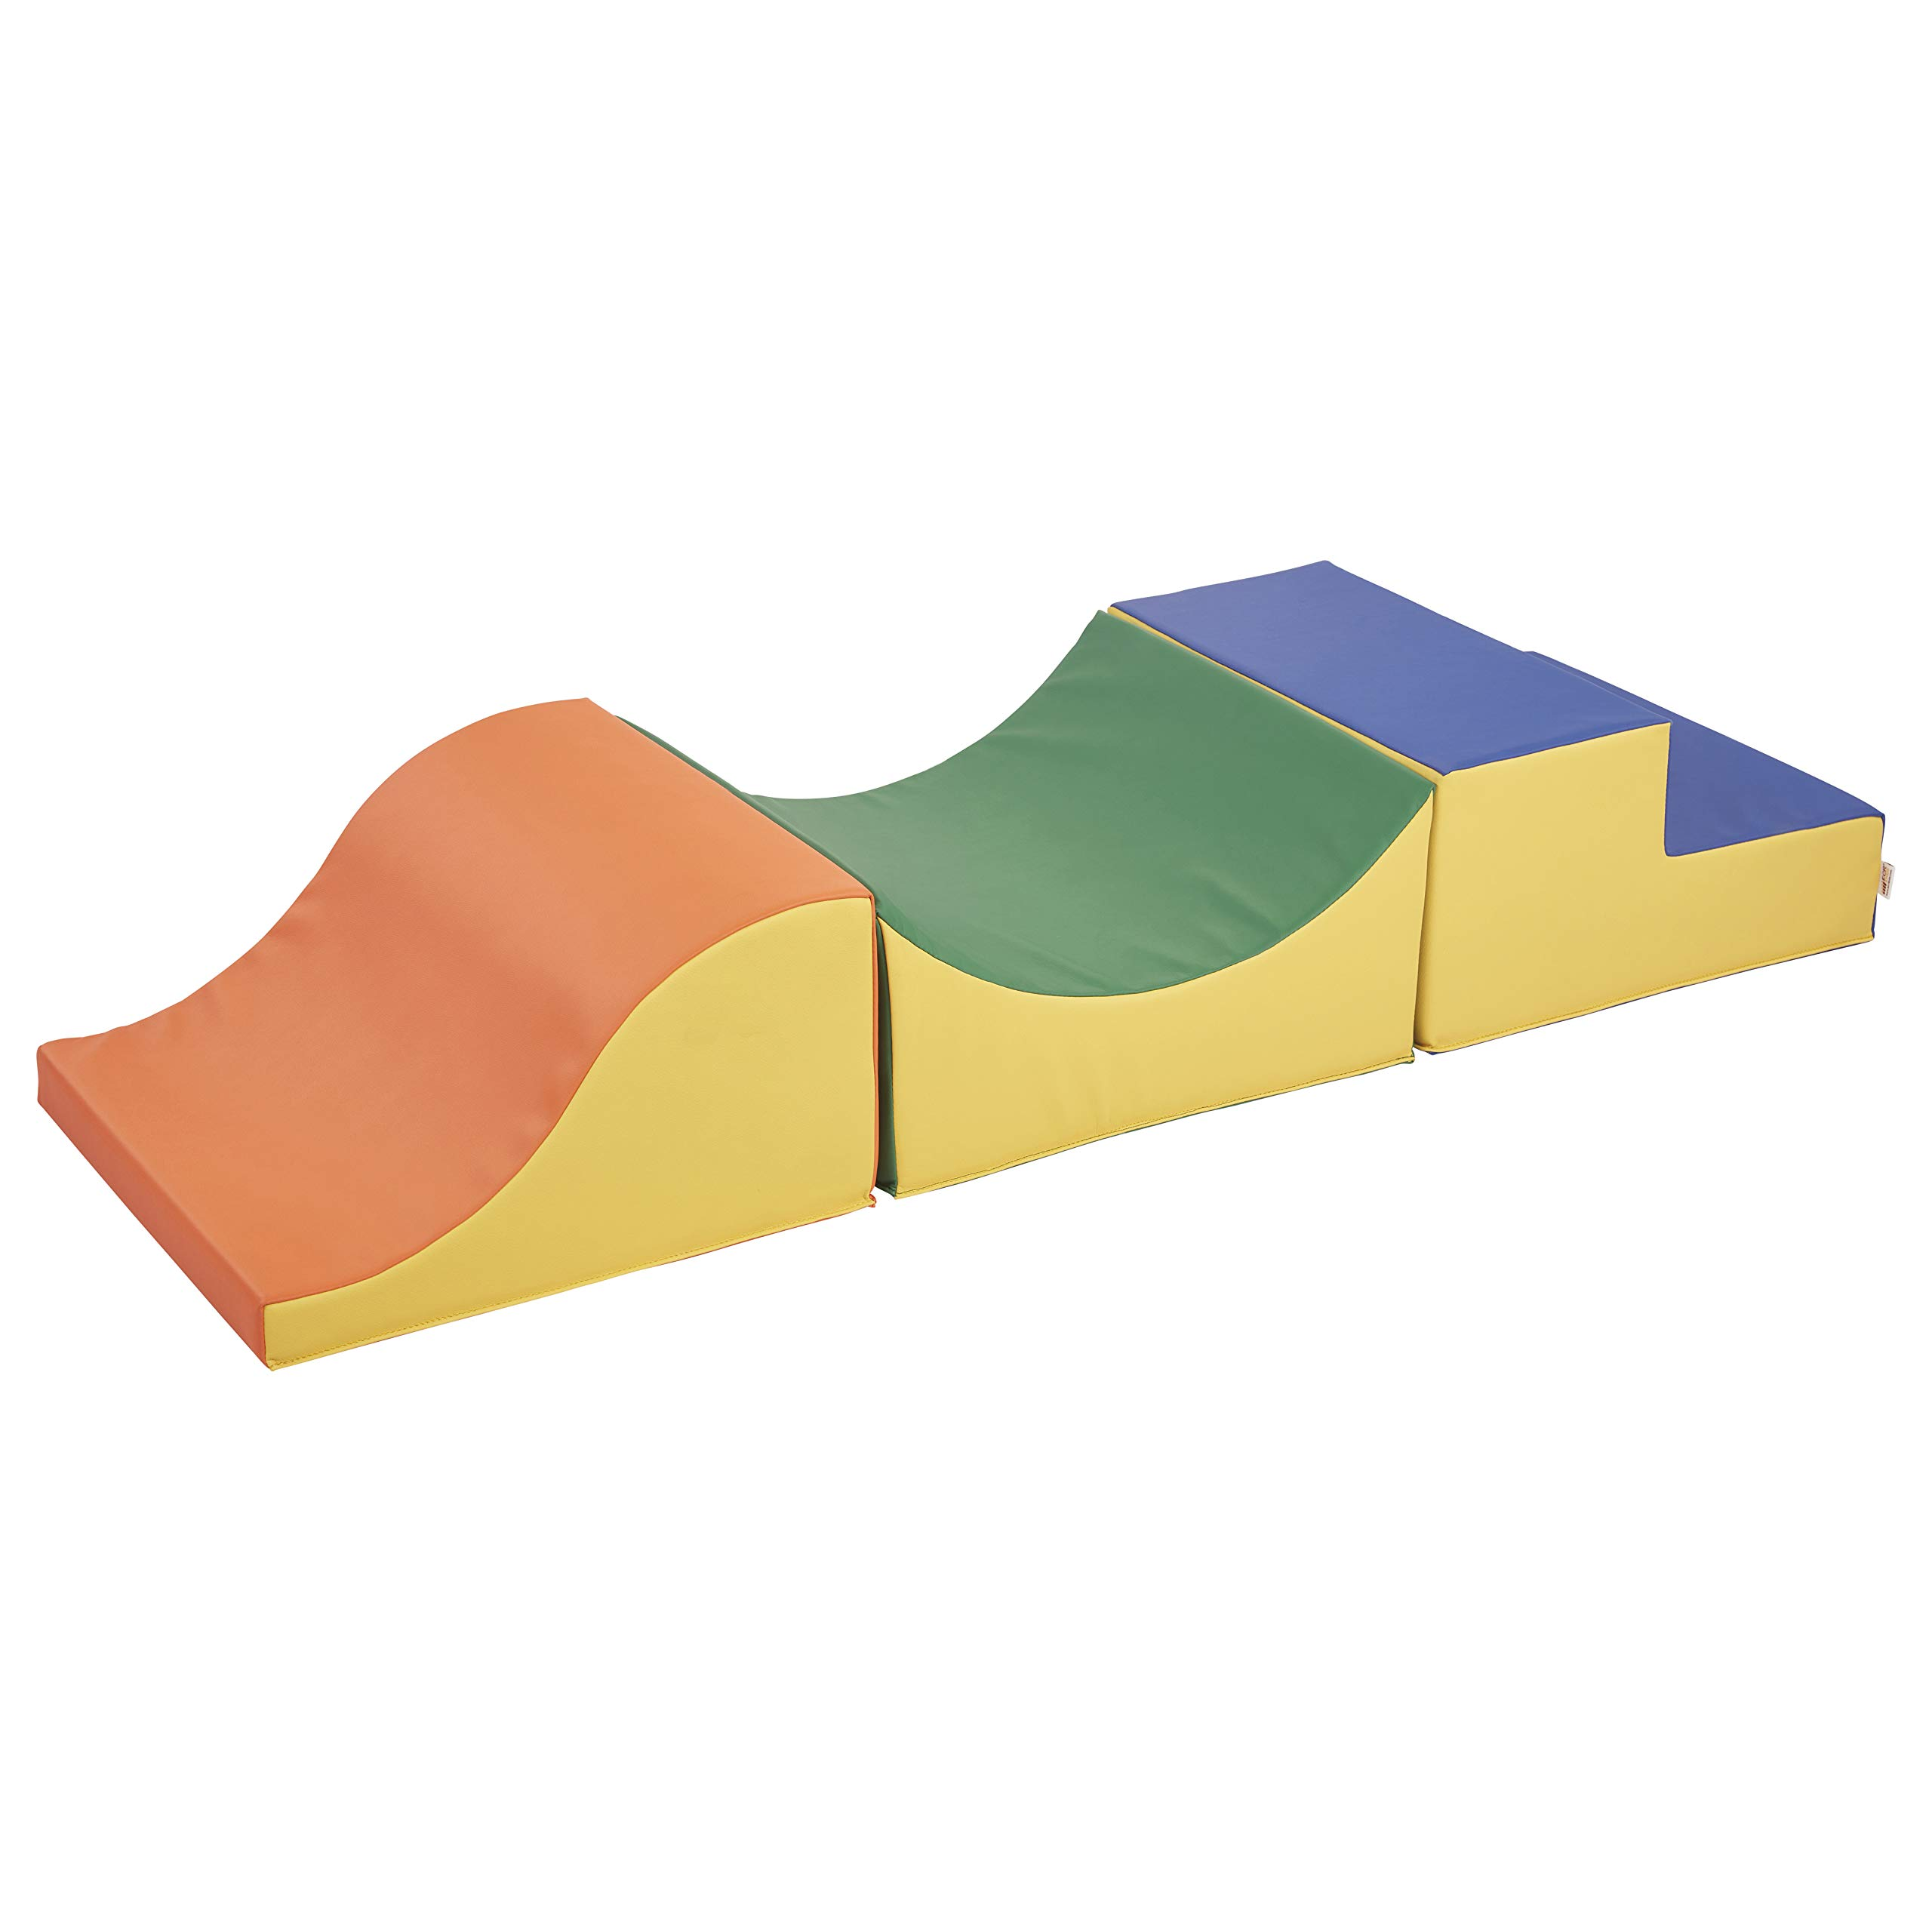 FDP SoftScape Thrill-Scape Climber for Toddlers and Kids, Colorful Beginner Step and Slide Foam Structure for Active Playtime (3-Piece Set) - Assorted by Factory Direct Partners